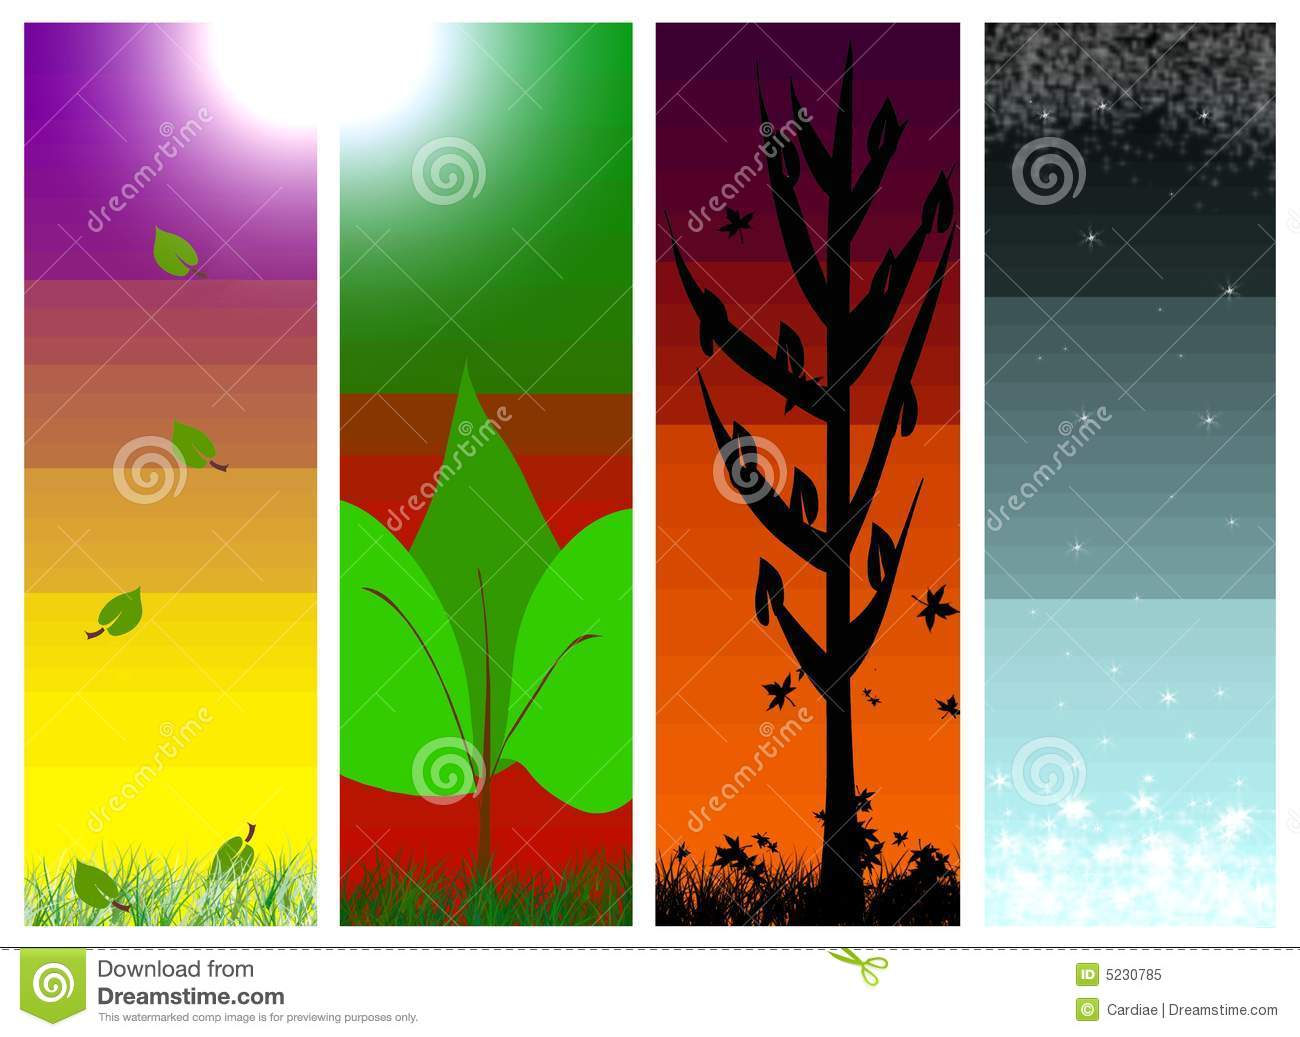 Fall Wallpaper For Cell Phone Four 4 Seasons Of The Year Spring Summer Fall Wint Royalty